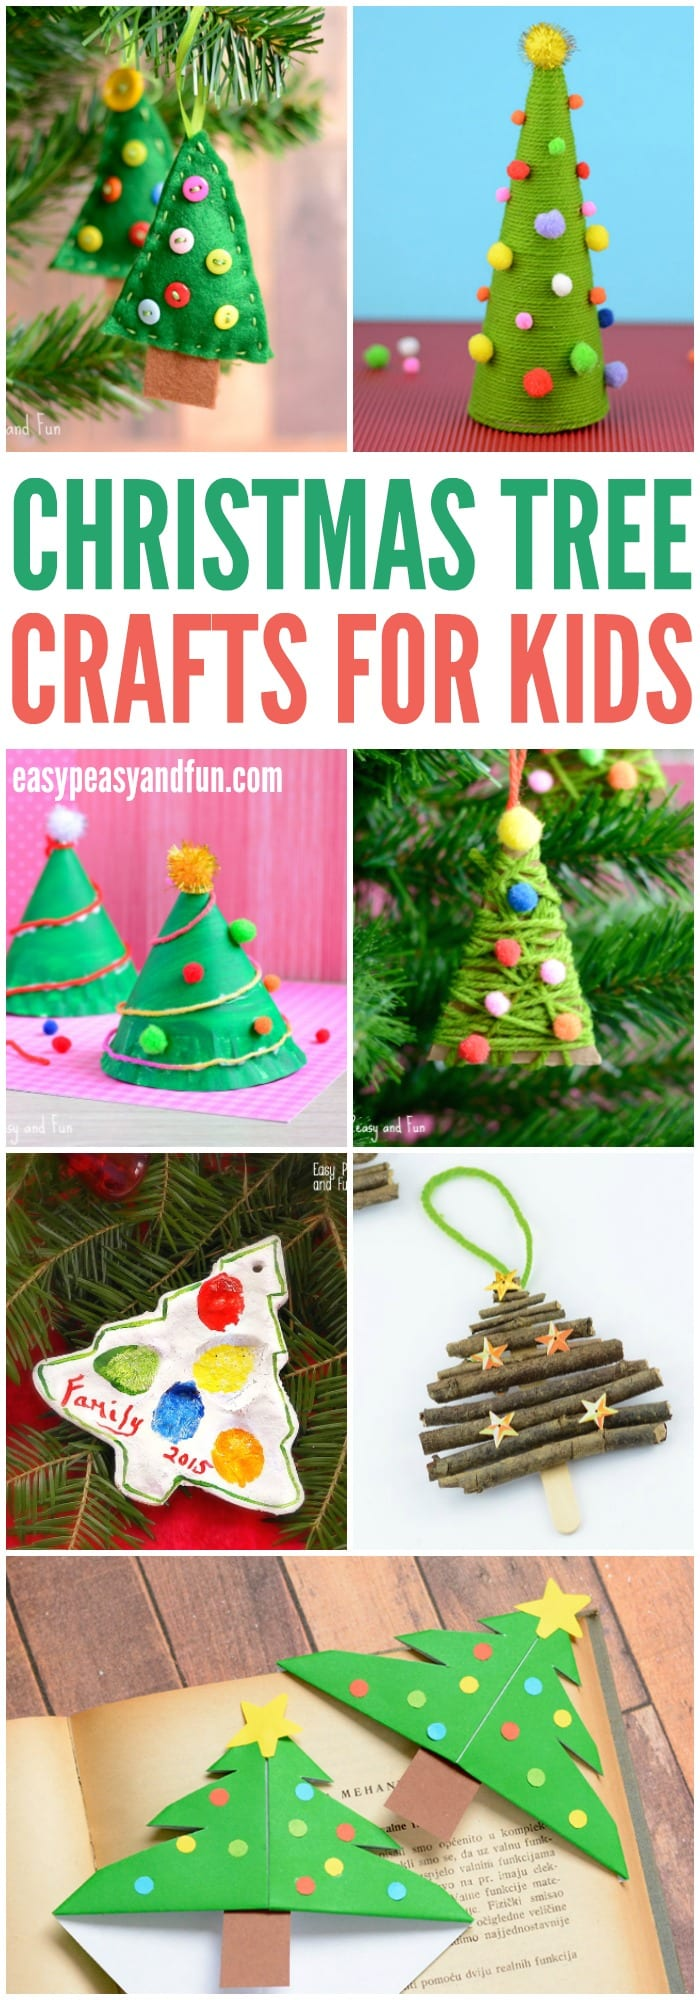 Christmas tree crafts for kids easy peasy and fun for Free christmas crafts for kids